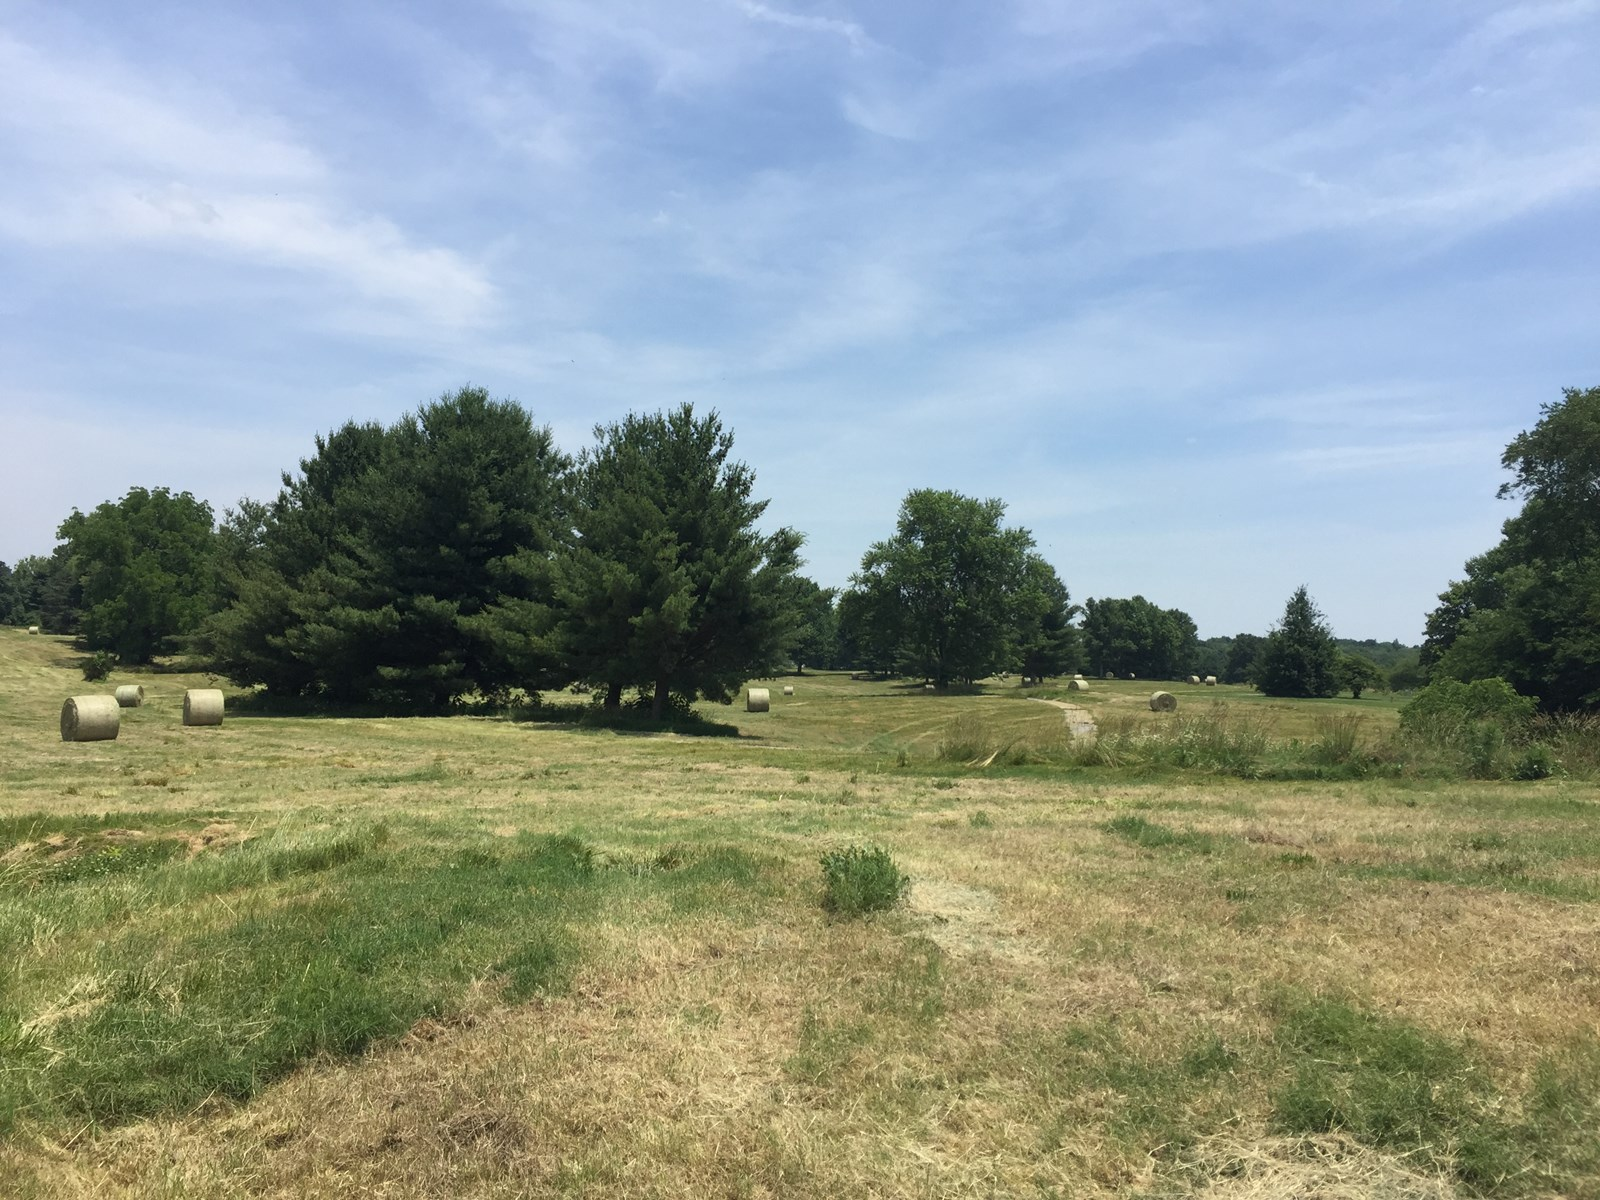 Land for sale in KY